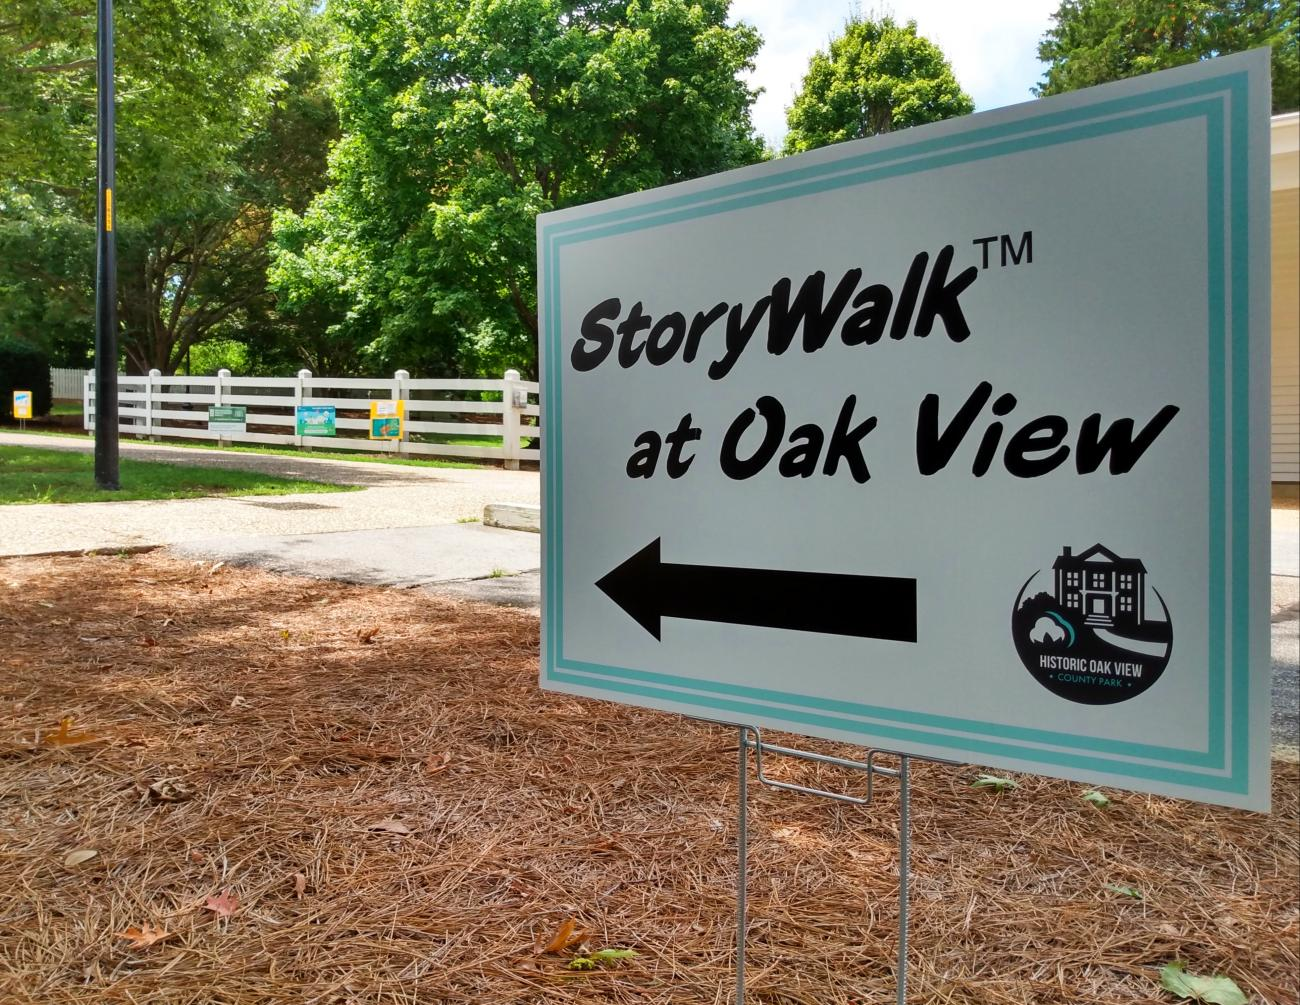 Directional sign for Oak View StoryWalk